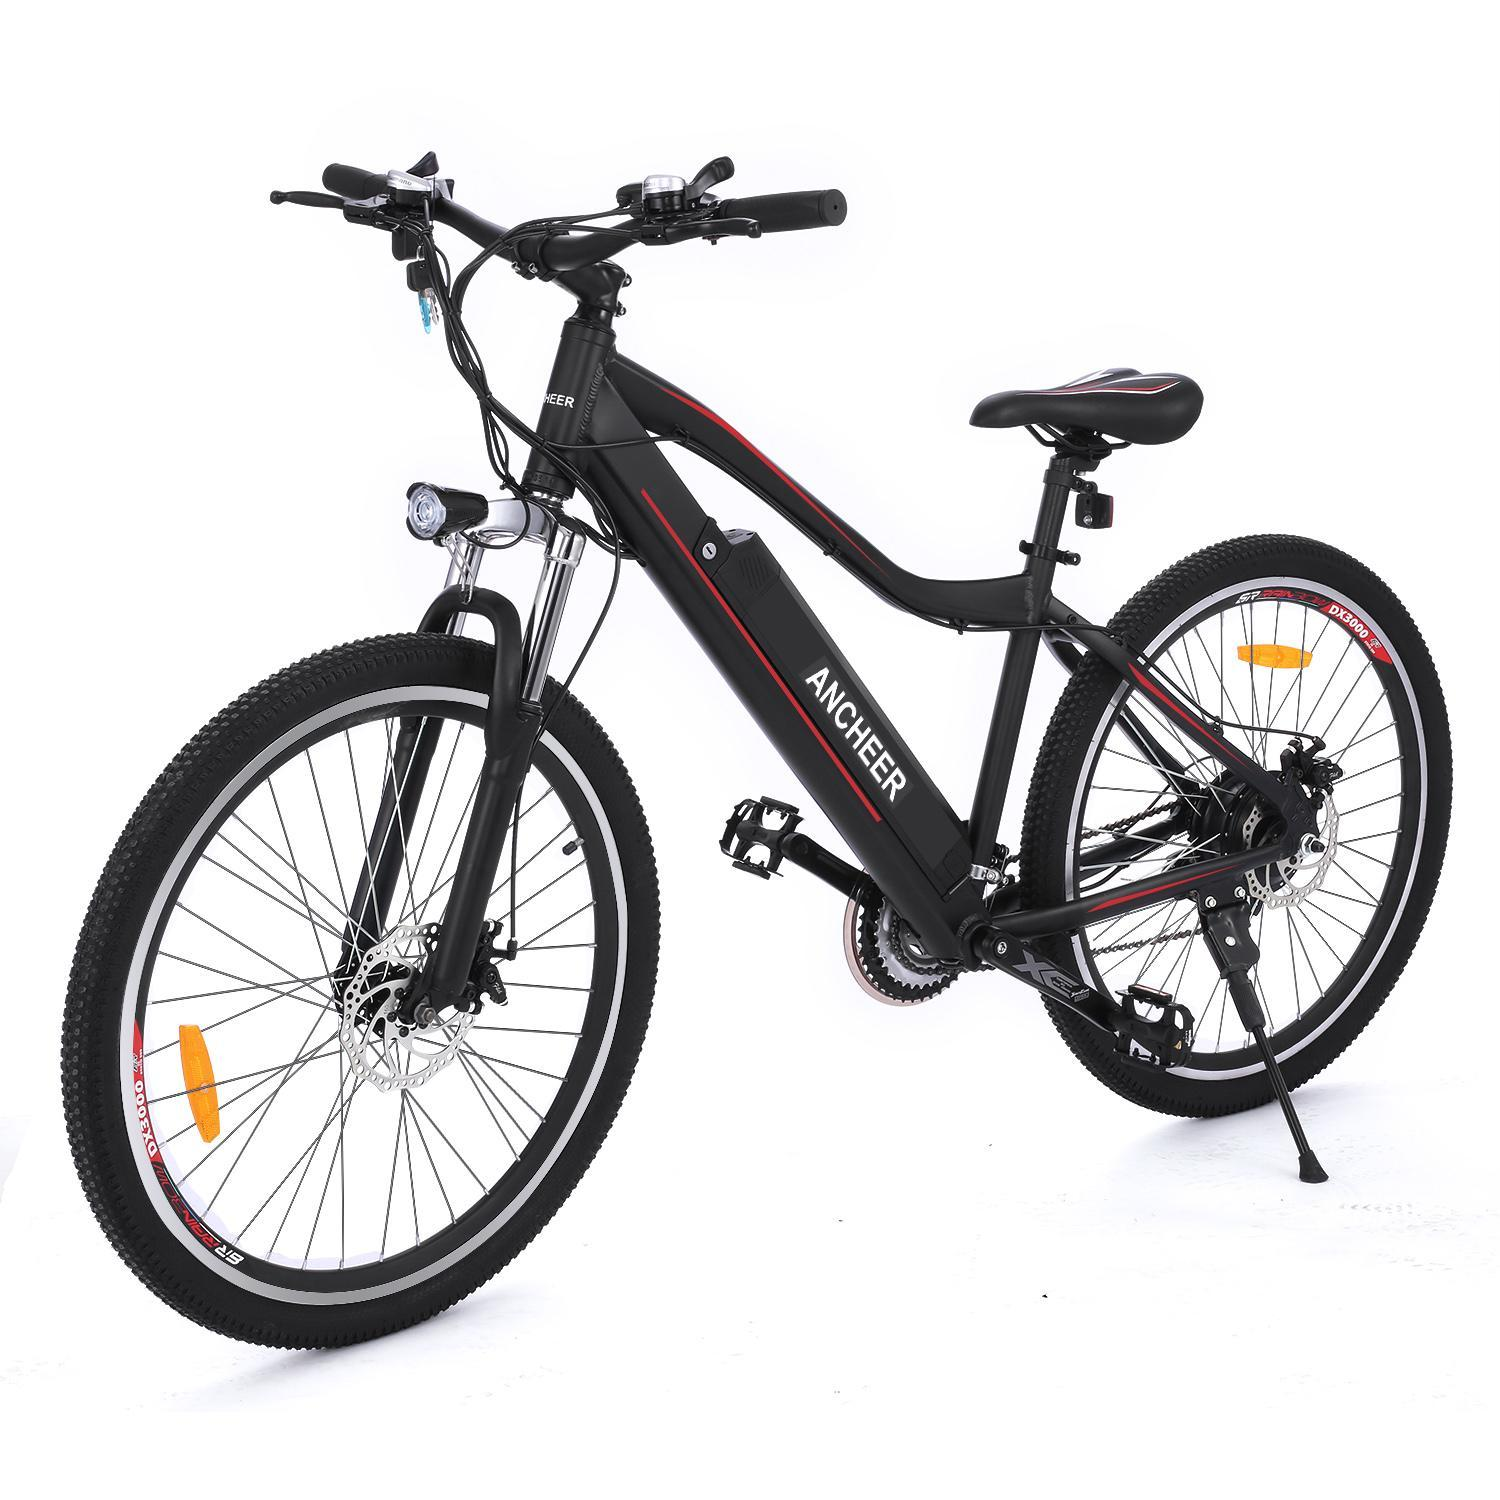 26inch Electric Mountain Bike Bicycle with Lithium Battery, 36V, 12A BLLK